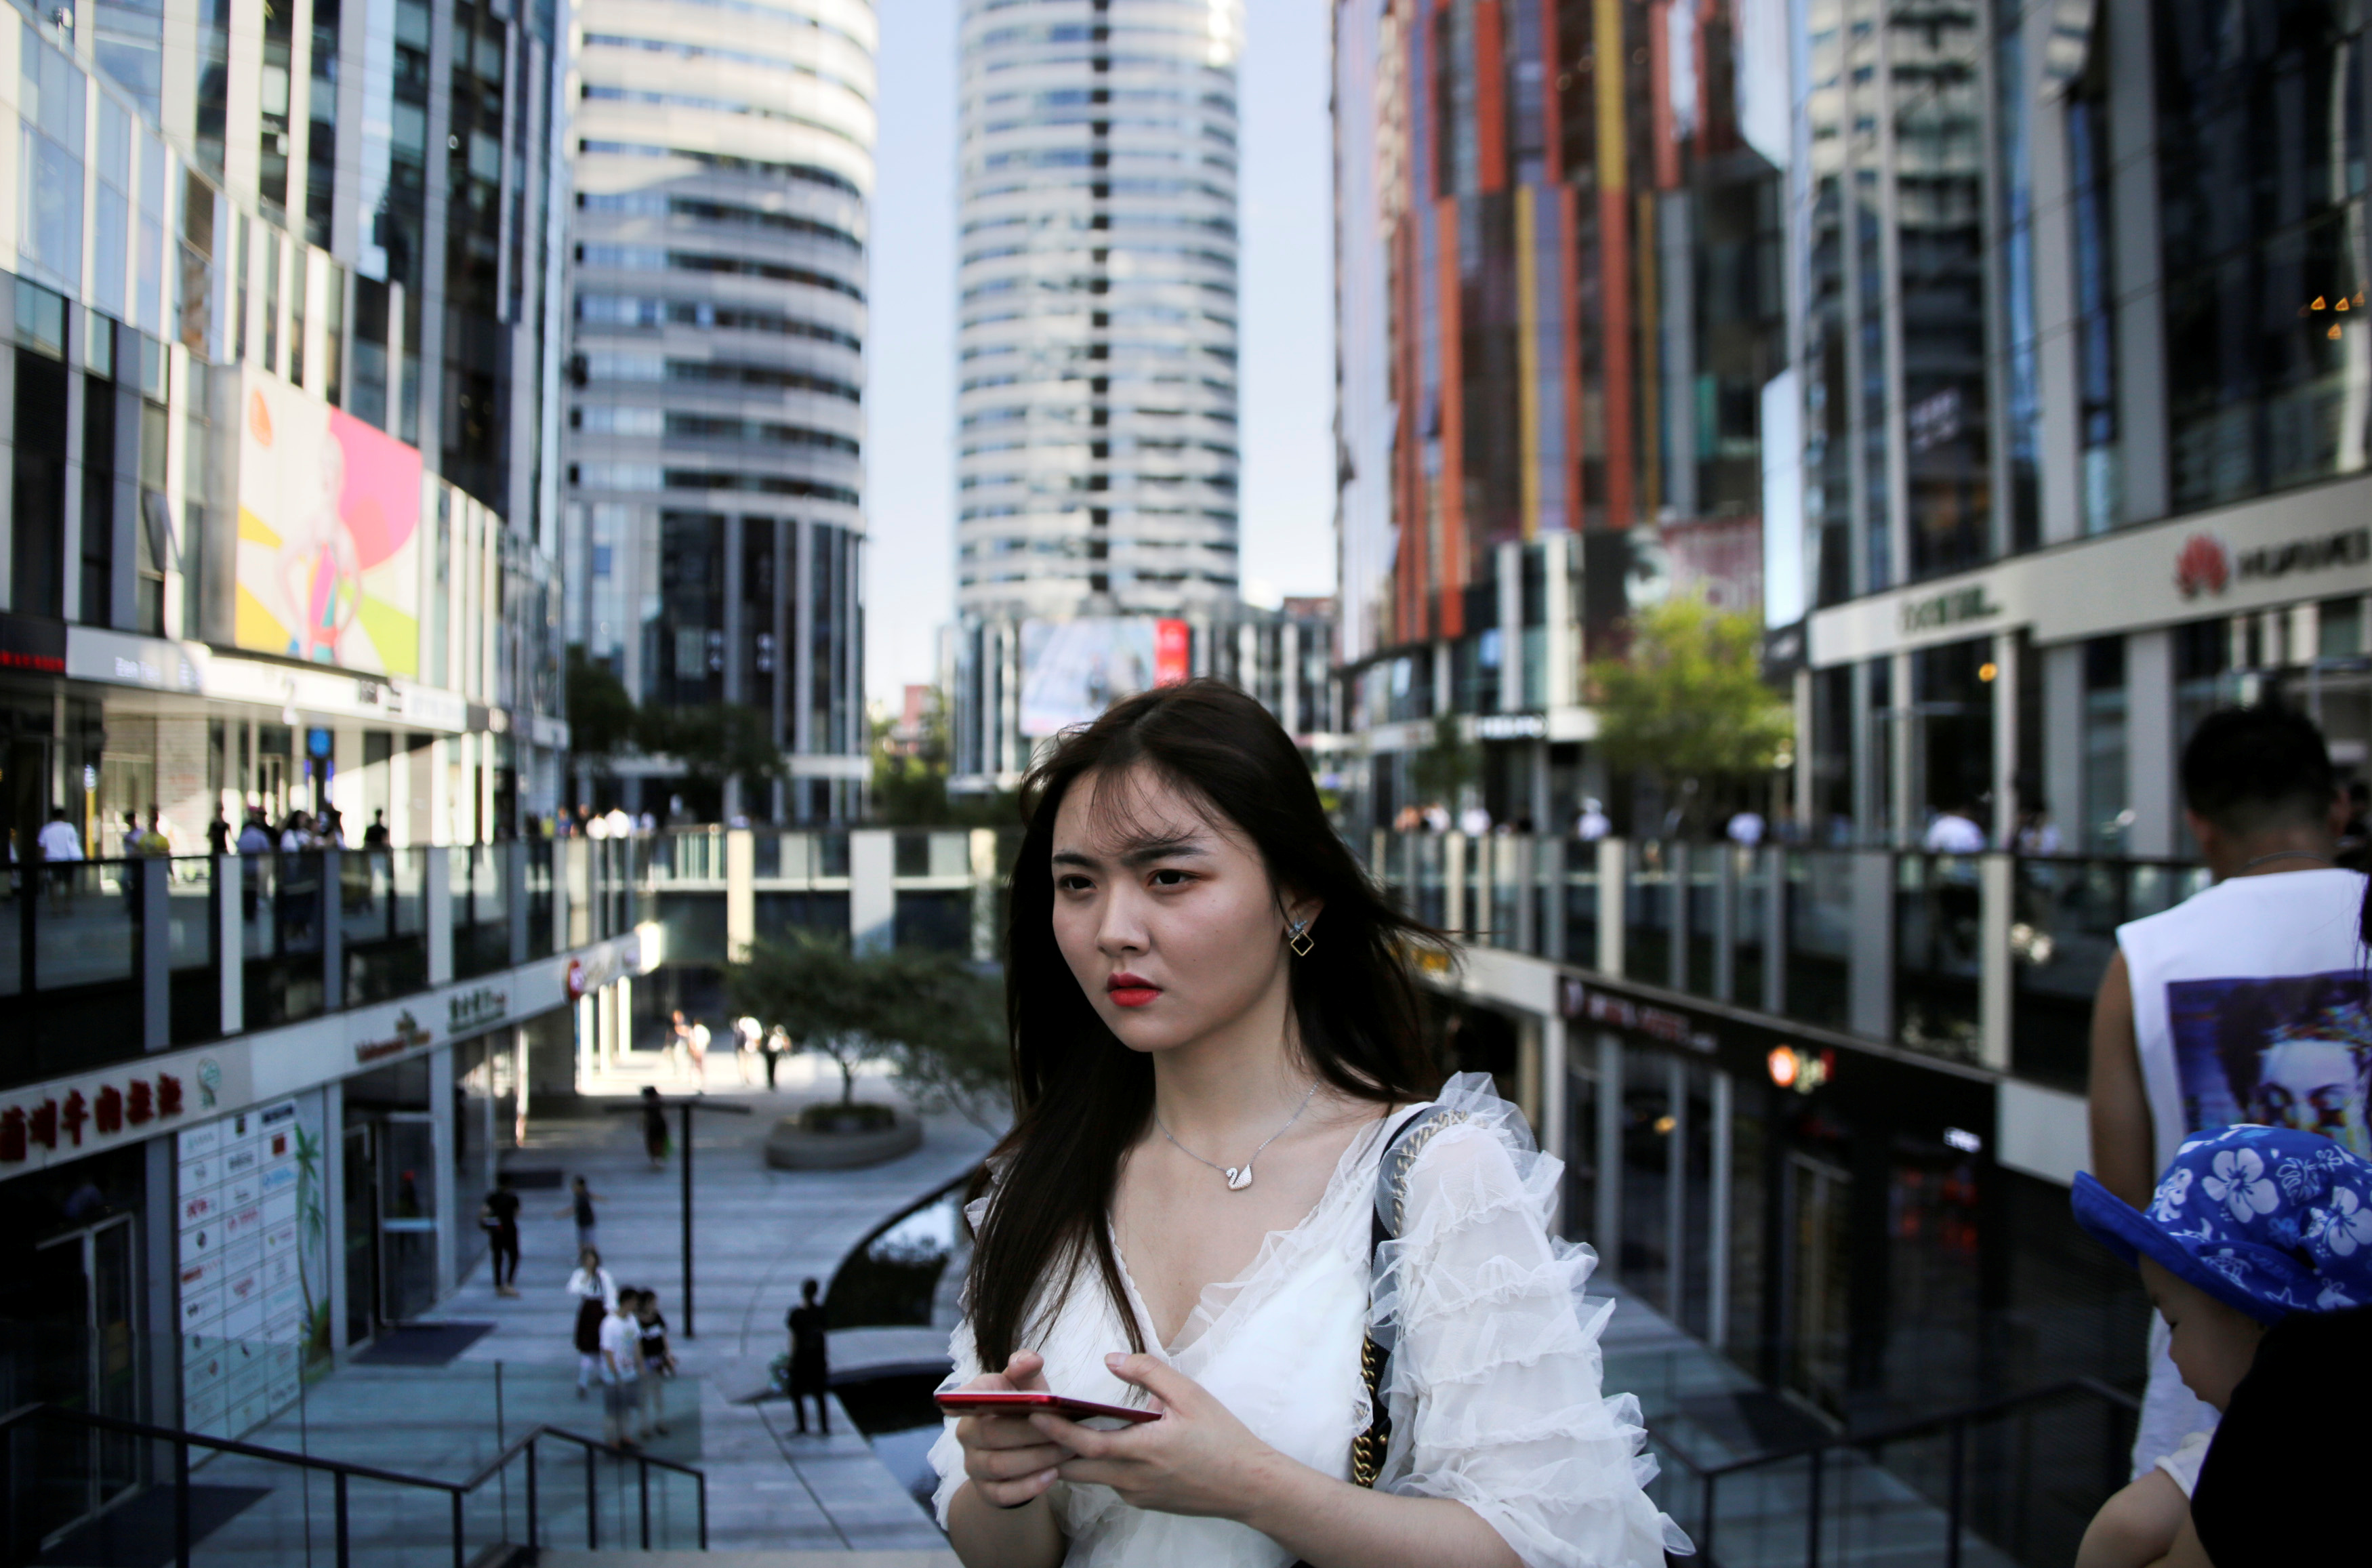 A young woman walks at Sanlitun Soho residential and commercial complex in Beijing, China June 28, 2018. REUTERS/Jason Lee